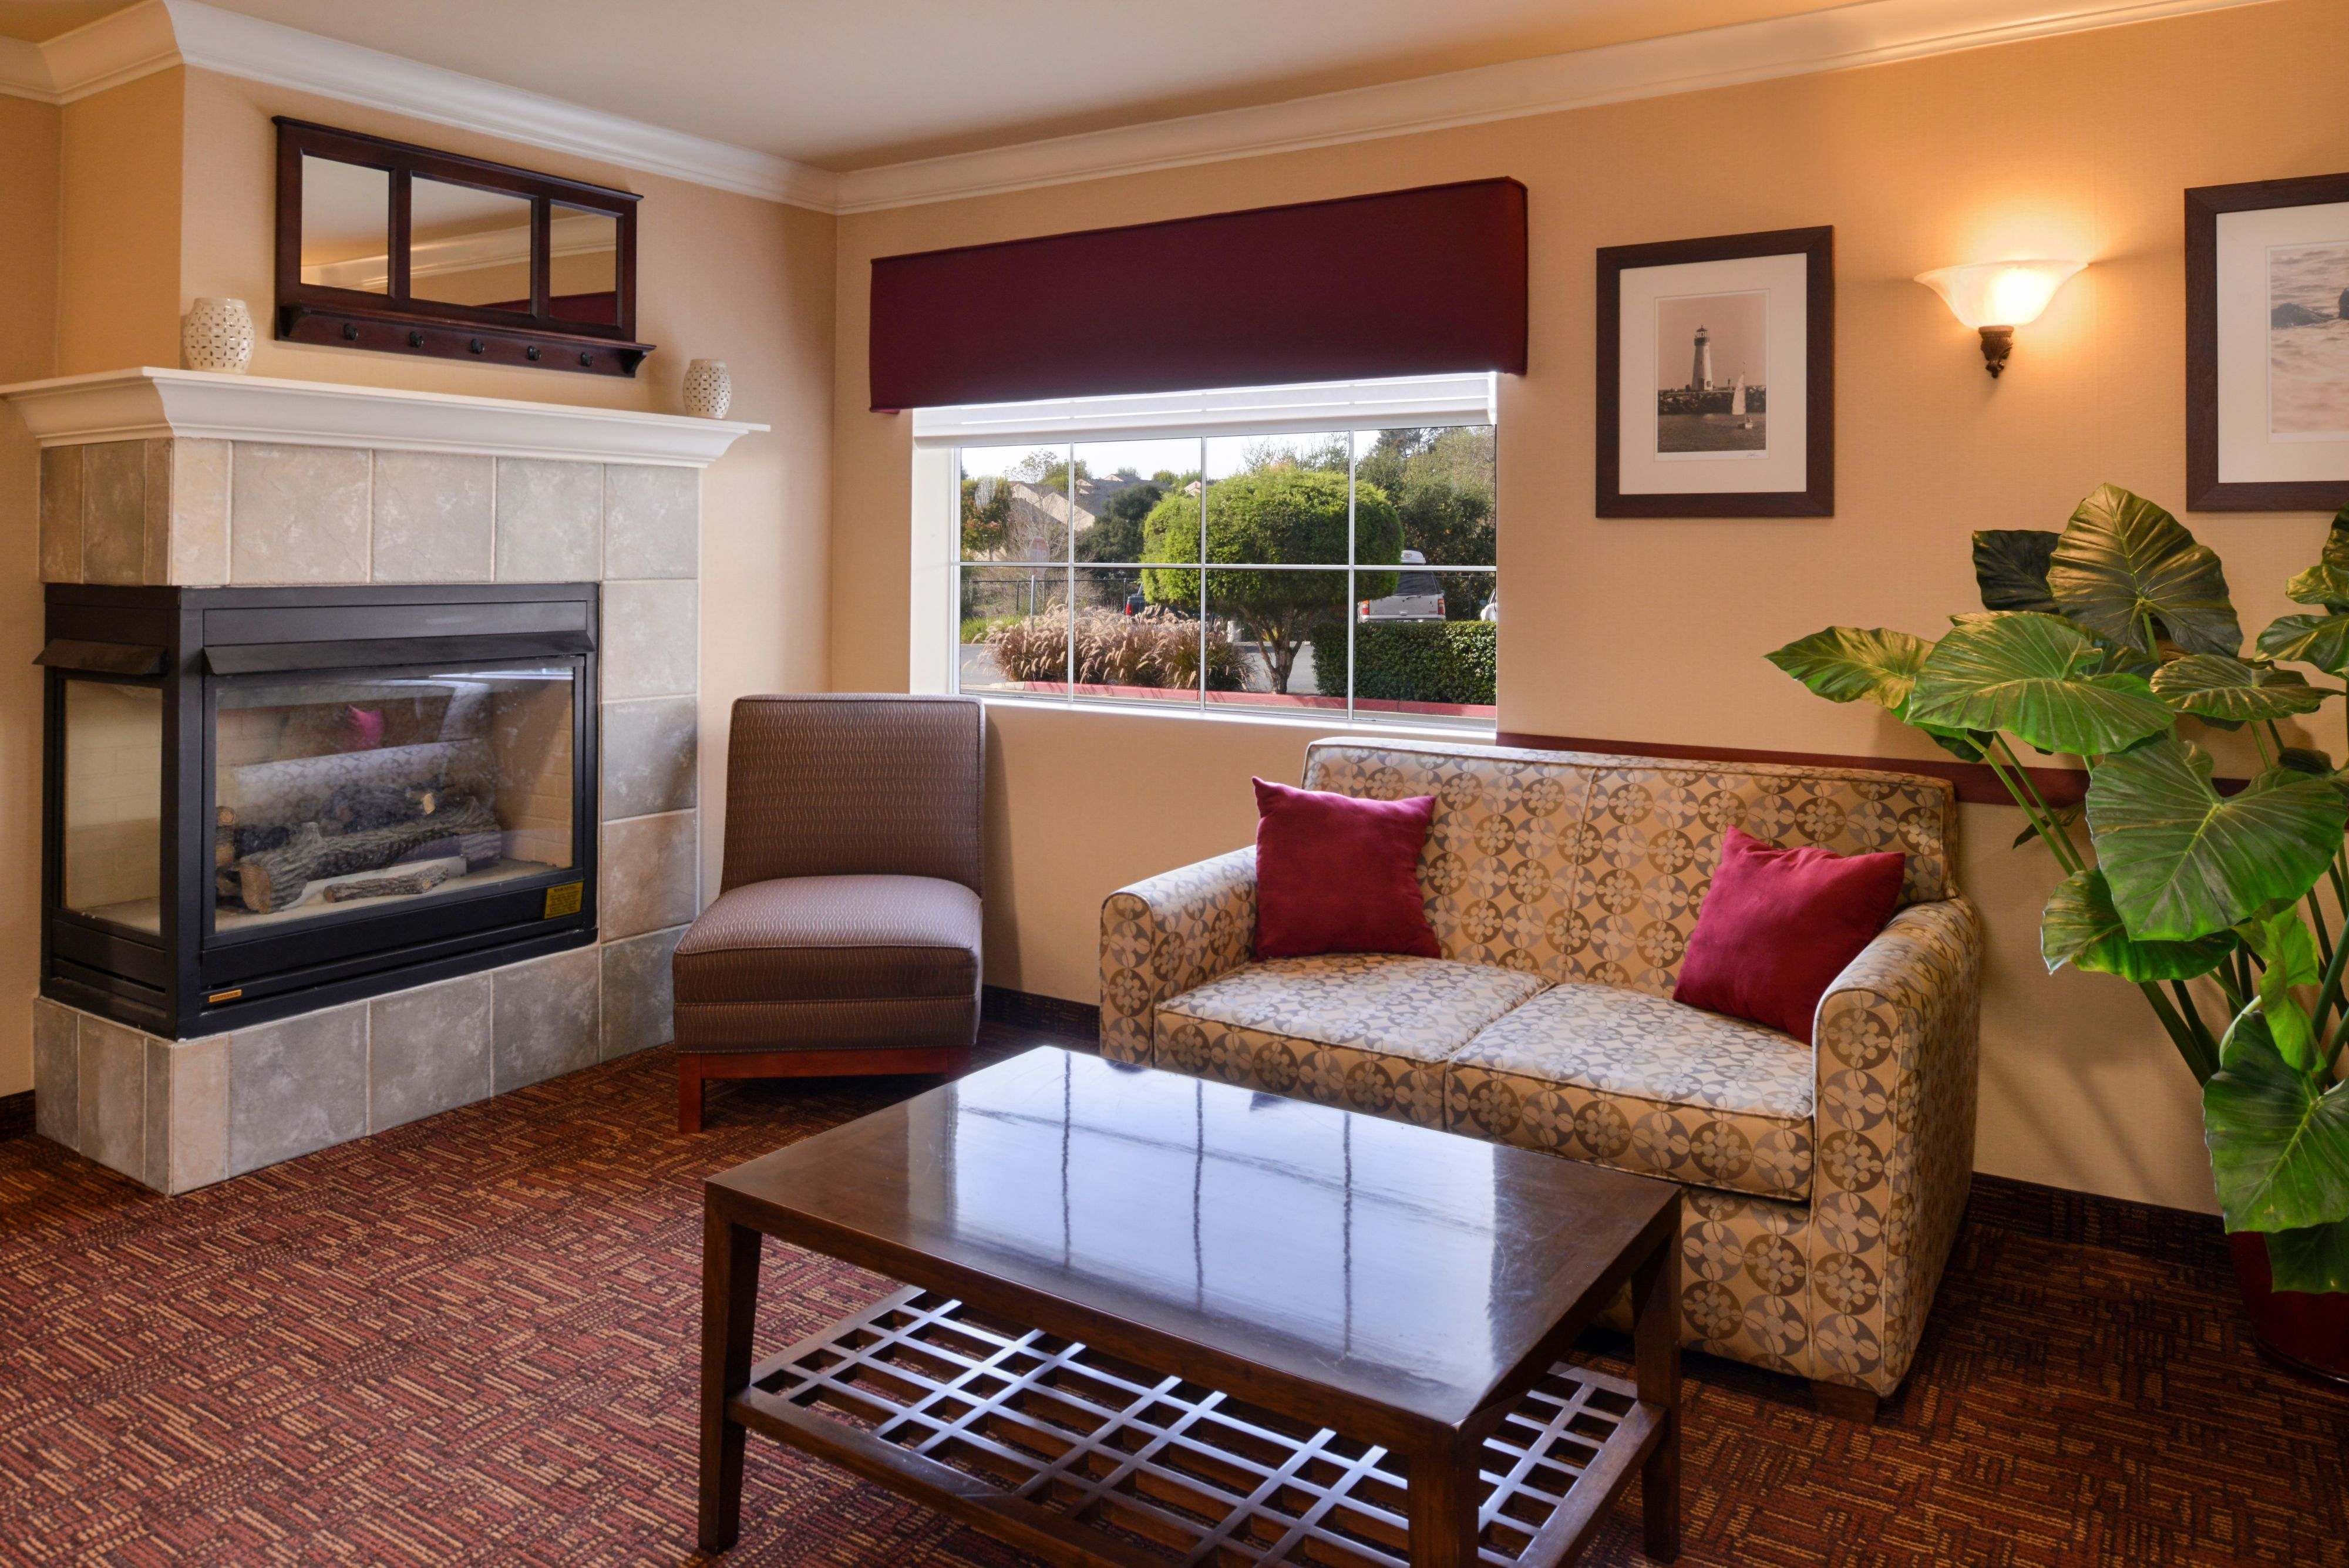 Holiday Inn Express & Suites Watsonville image 5